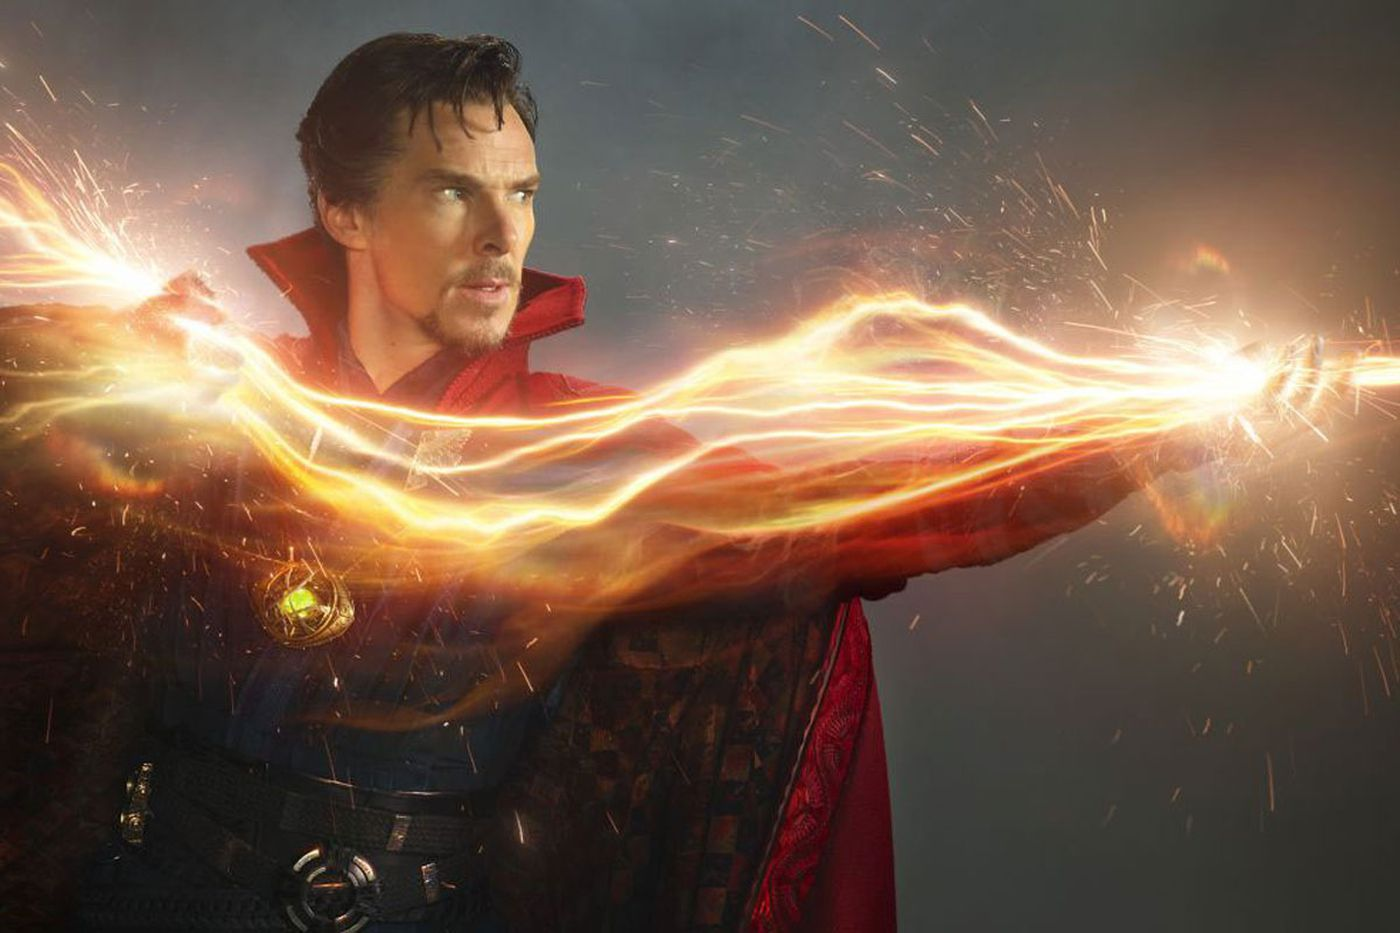 Benedict Cumberbatch as Doctor Strange.